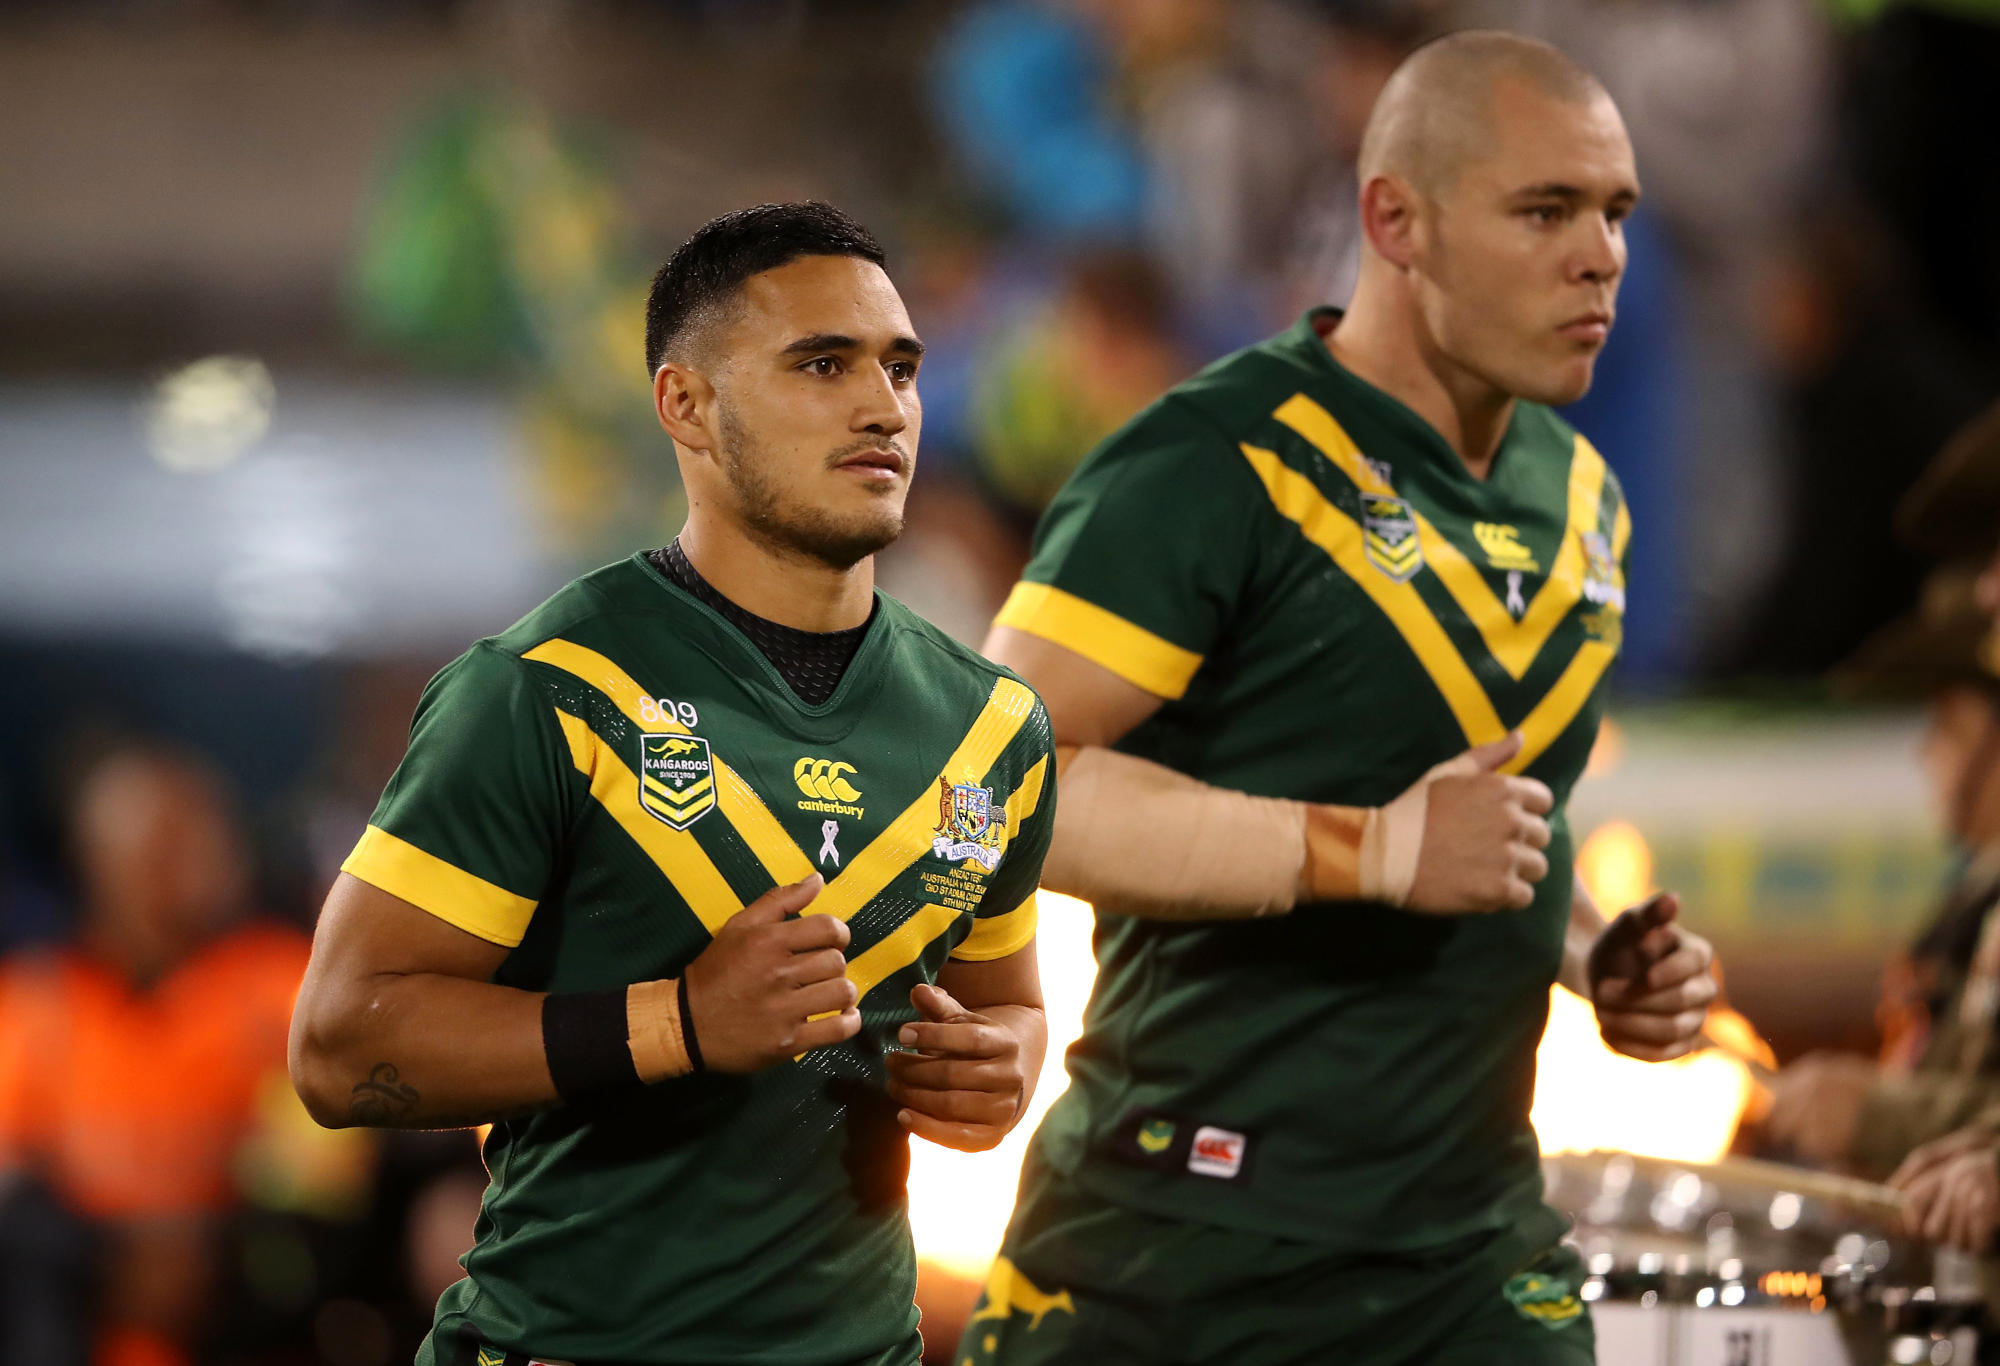 cbdeca39c54 Valentine Holmes and David Klemmer of the Kangaroos runs out to the field  before the ANZAC